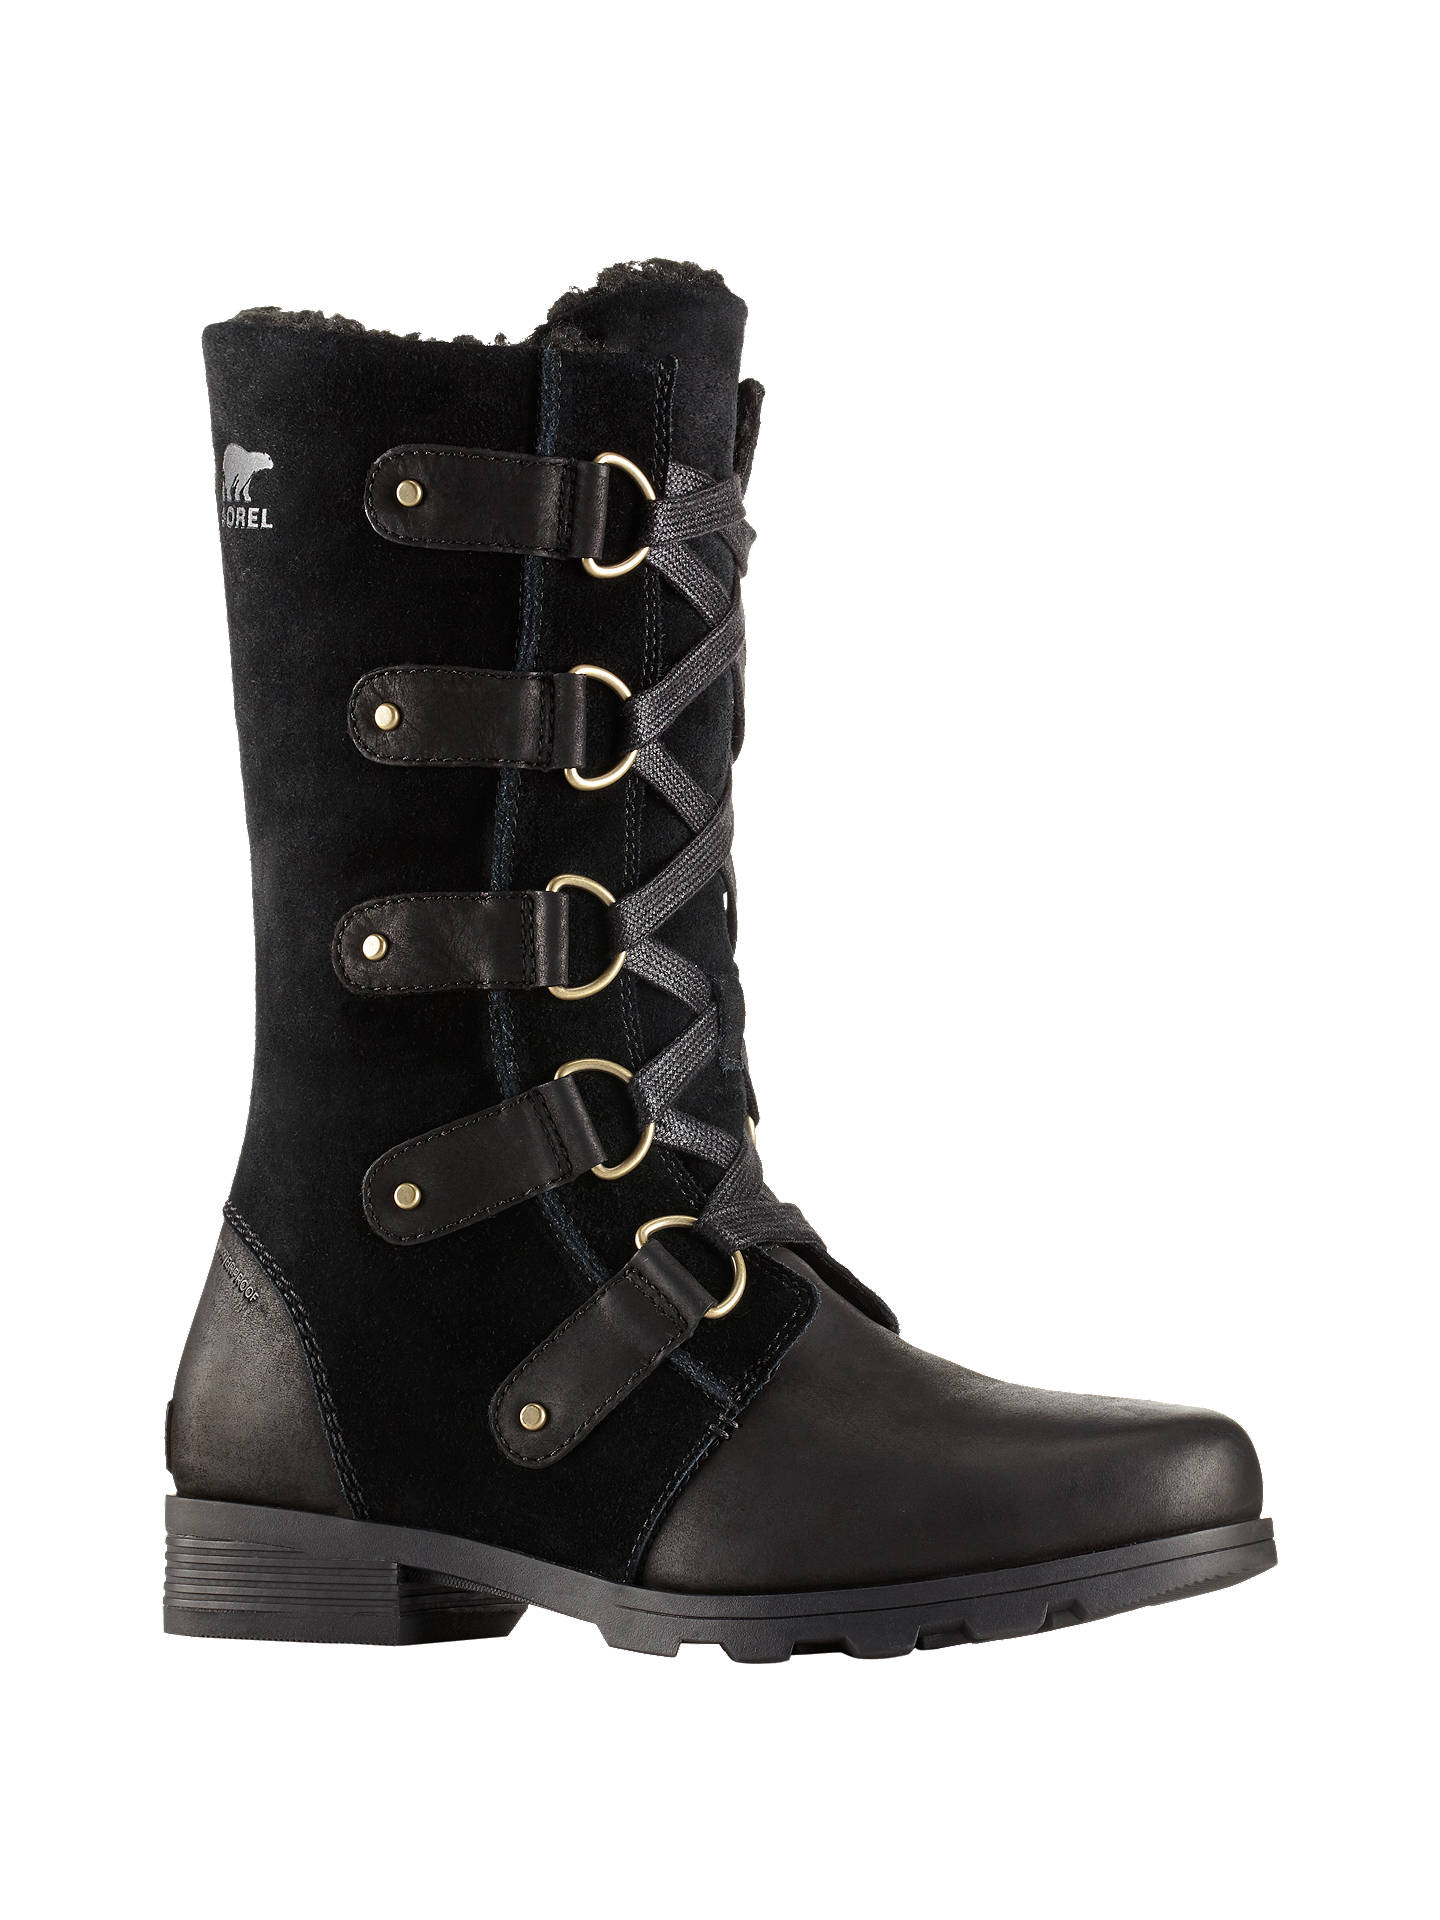 14f64a43a Buy Sorel Emelie Lace Up Long Snow Boots, Black Leather, 6 Online at  johnlewis ...